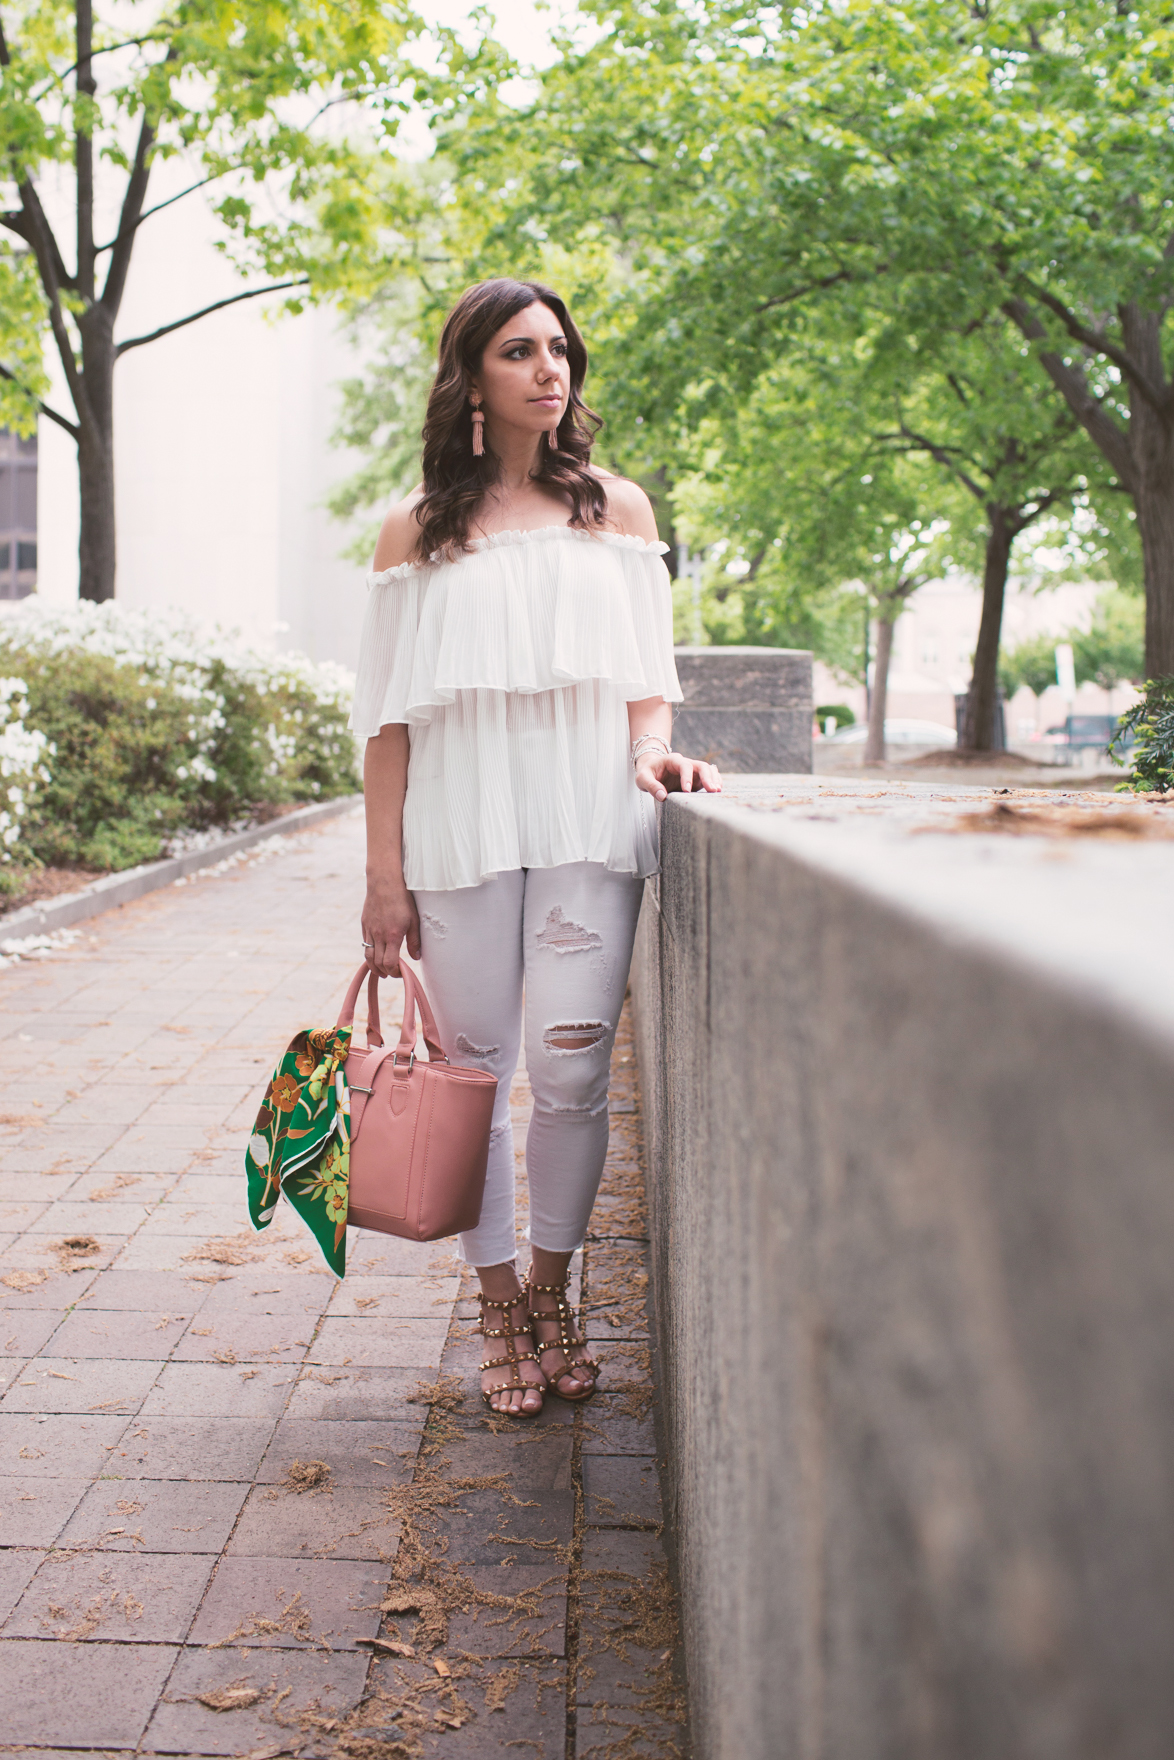 Lifestyle blogger Roxanne of Glass of Glam wearing a Goodnight Macaroon off the shoulder top, Old Navy denim, Lisi Lerch tassel earrings, and a silk scarf